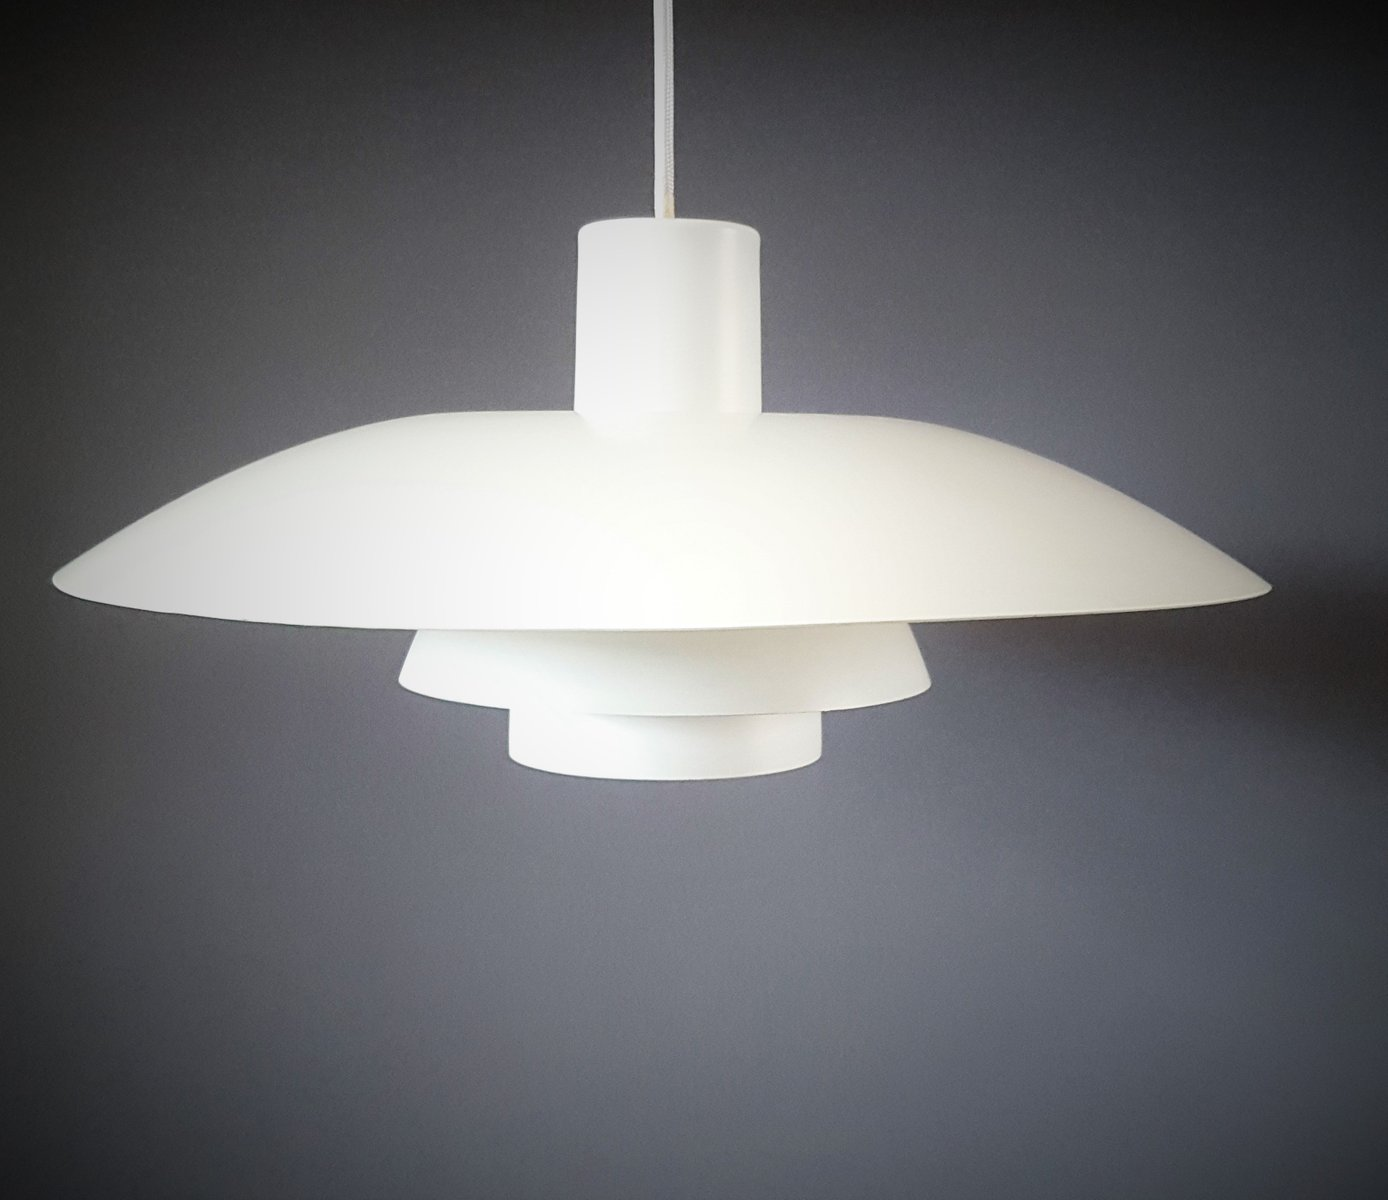 Lampe suspension ph 4 3 vintage blanche par poul for Lampe suspension blanche